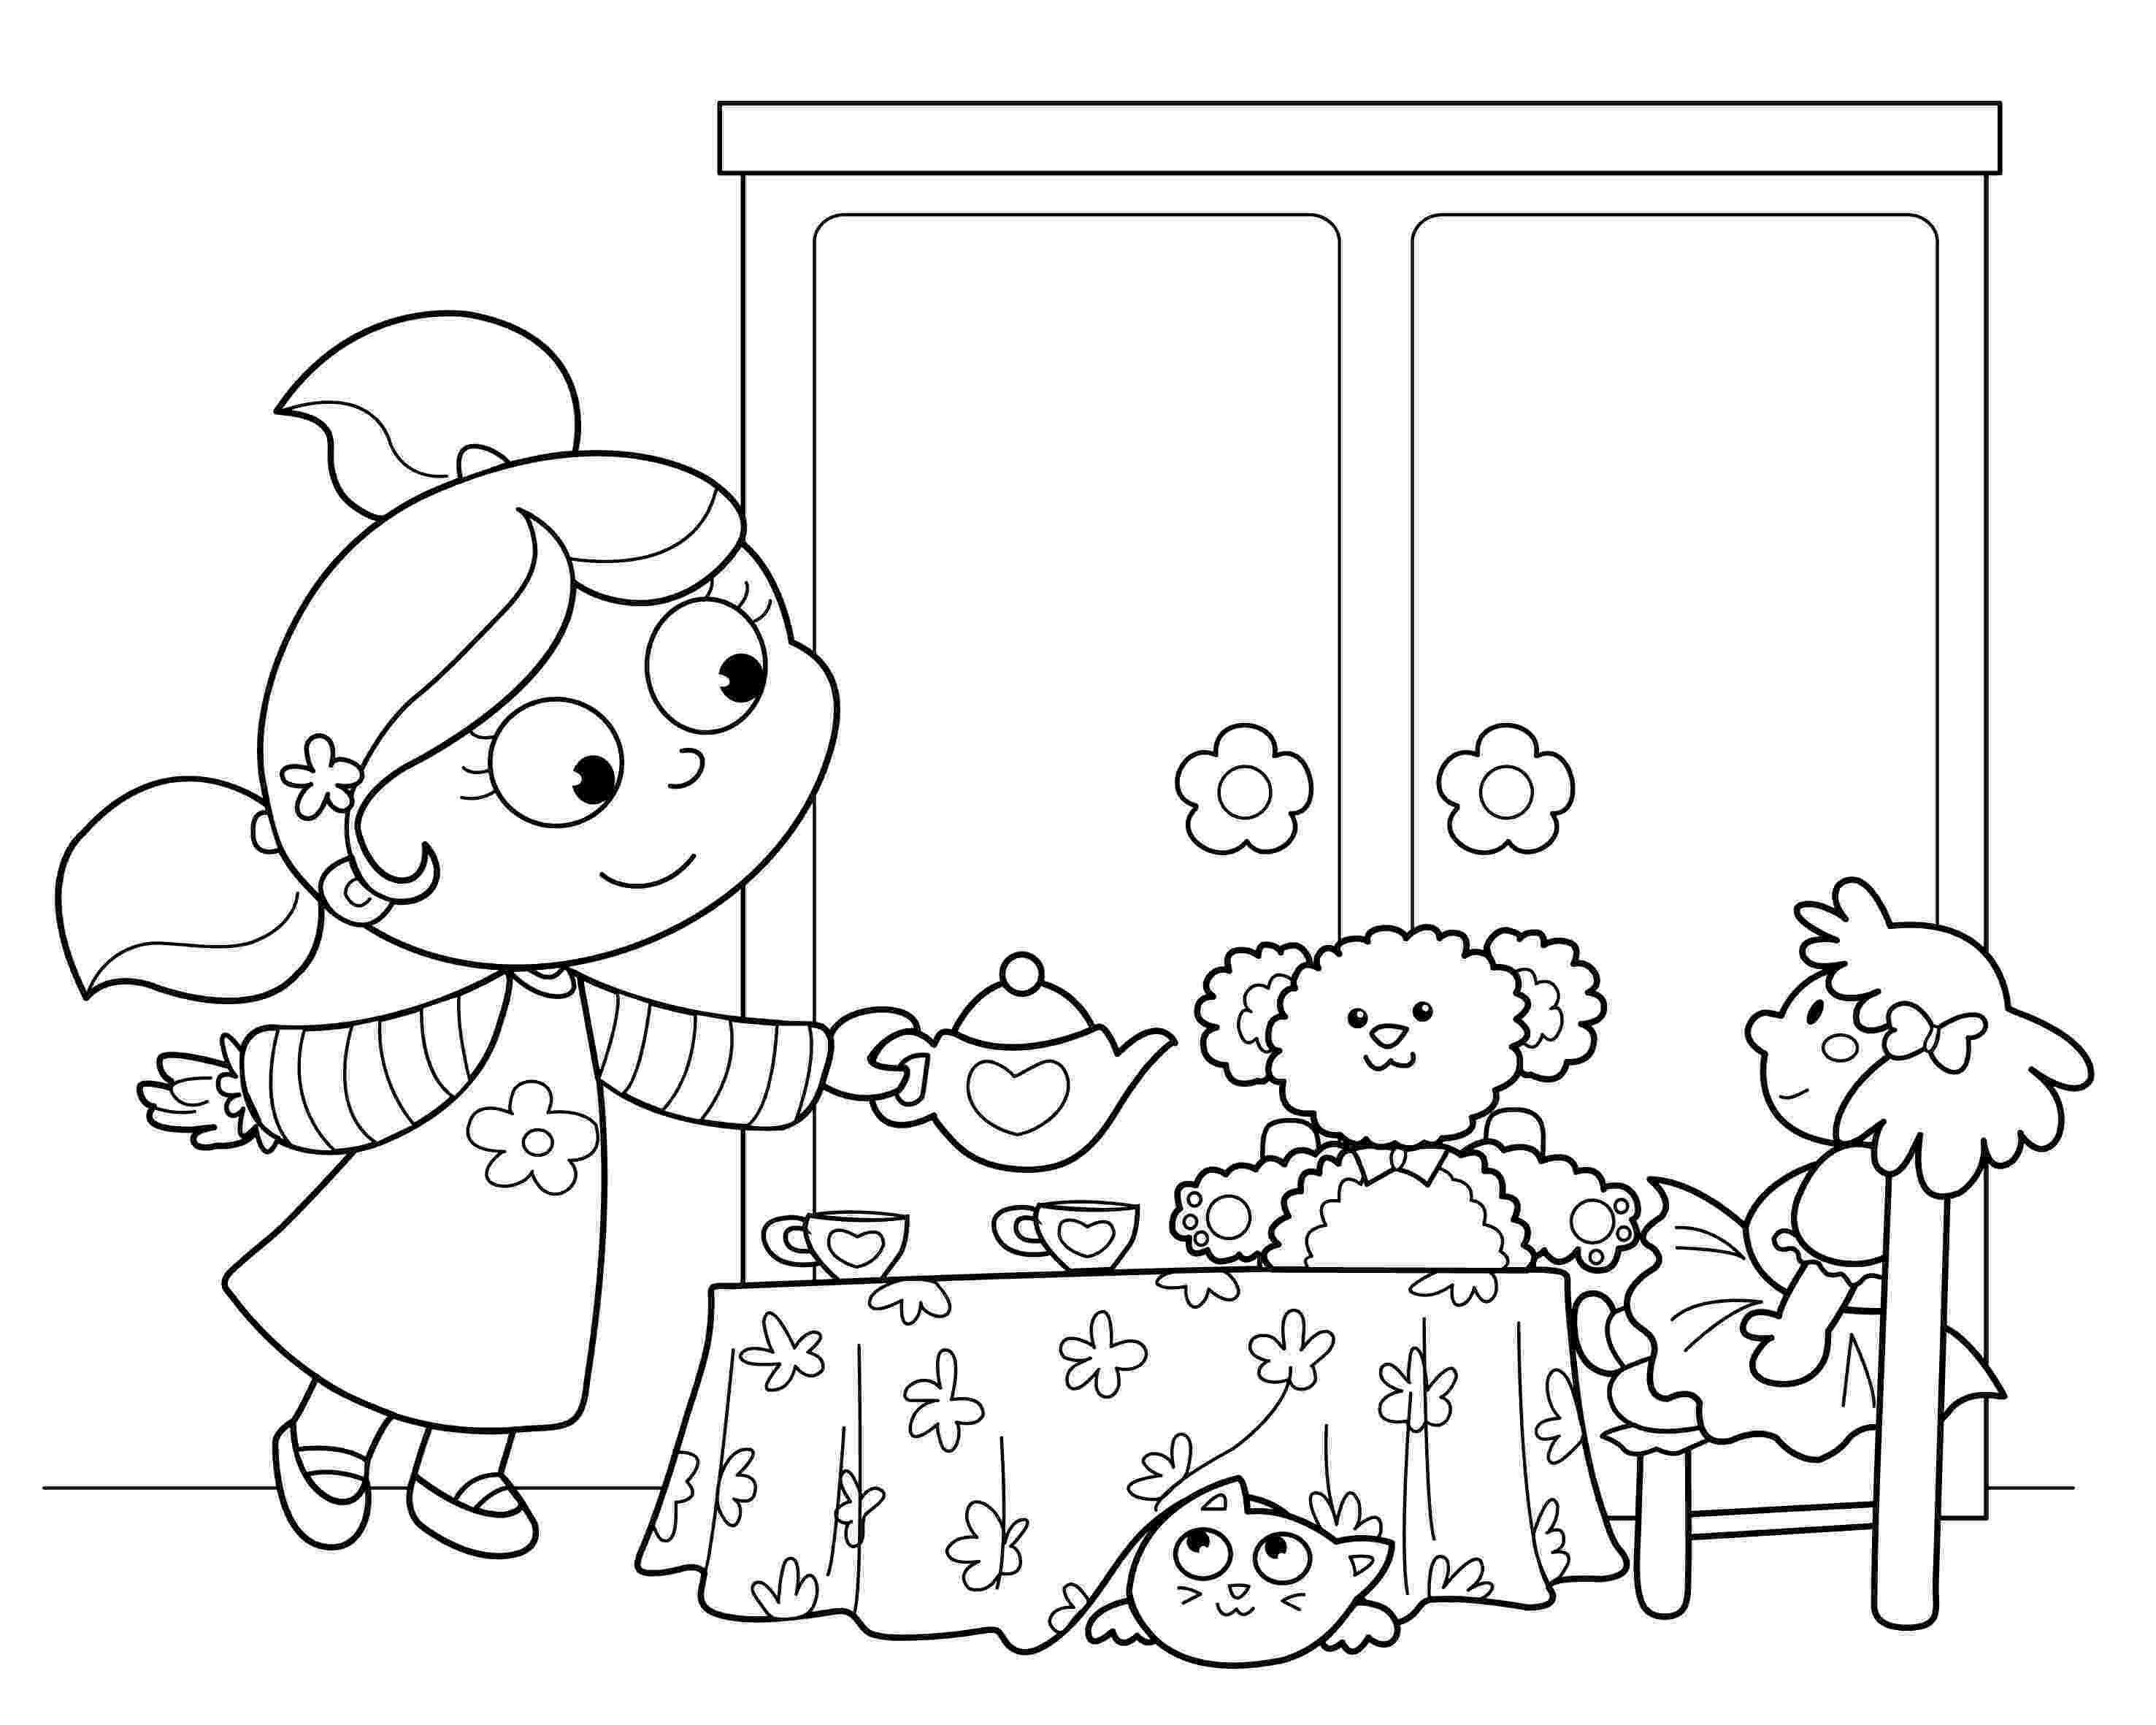 tea party coloring pages tea party coloring pages to download and print for free tea pages party coloring